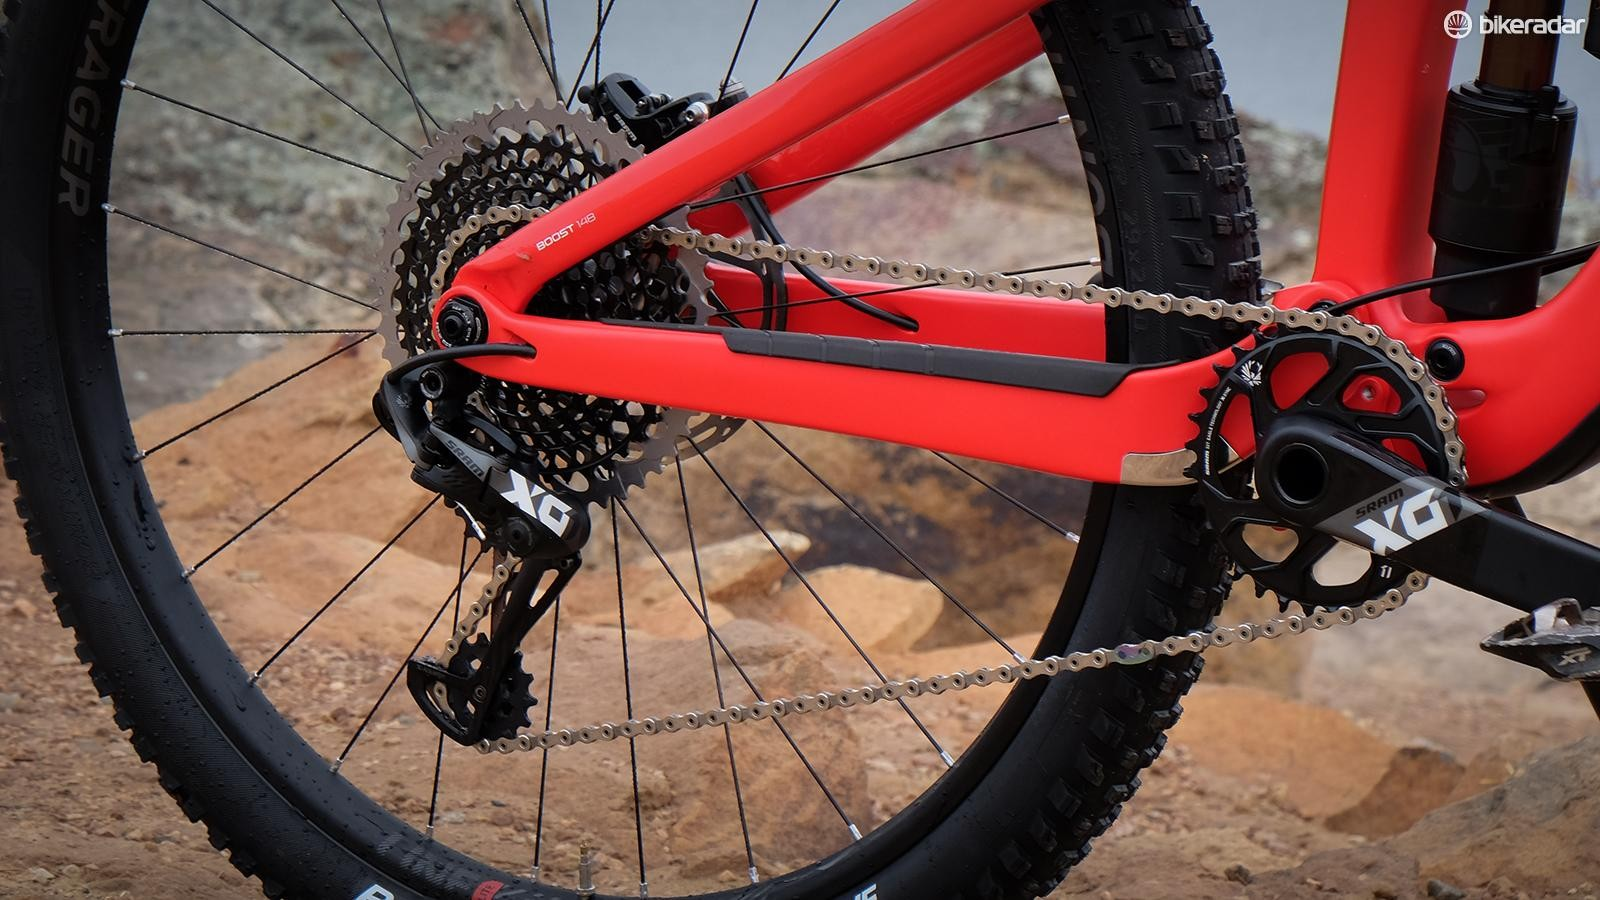 SRAM's XX1 and XO1 Eagle drivetrains are impressive, but more affordable versions are needed